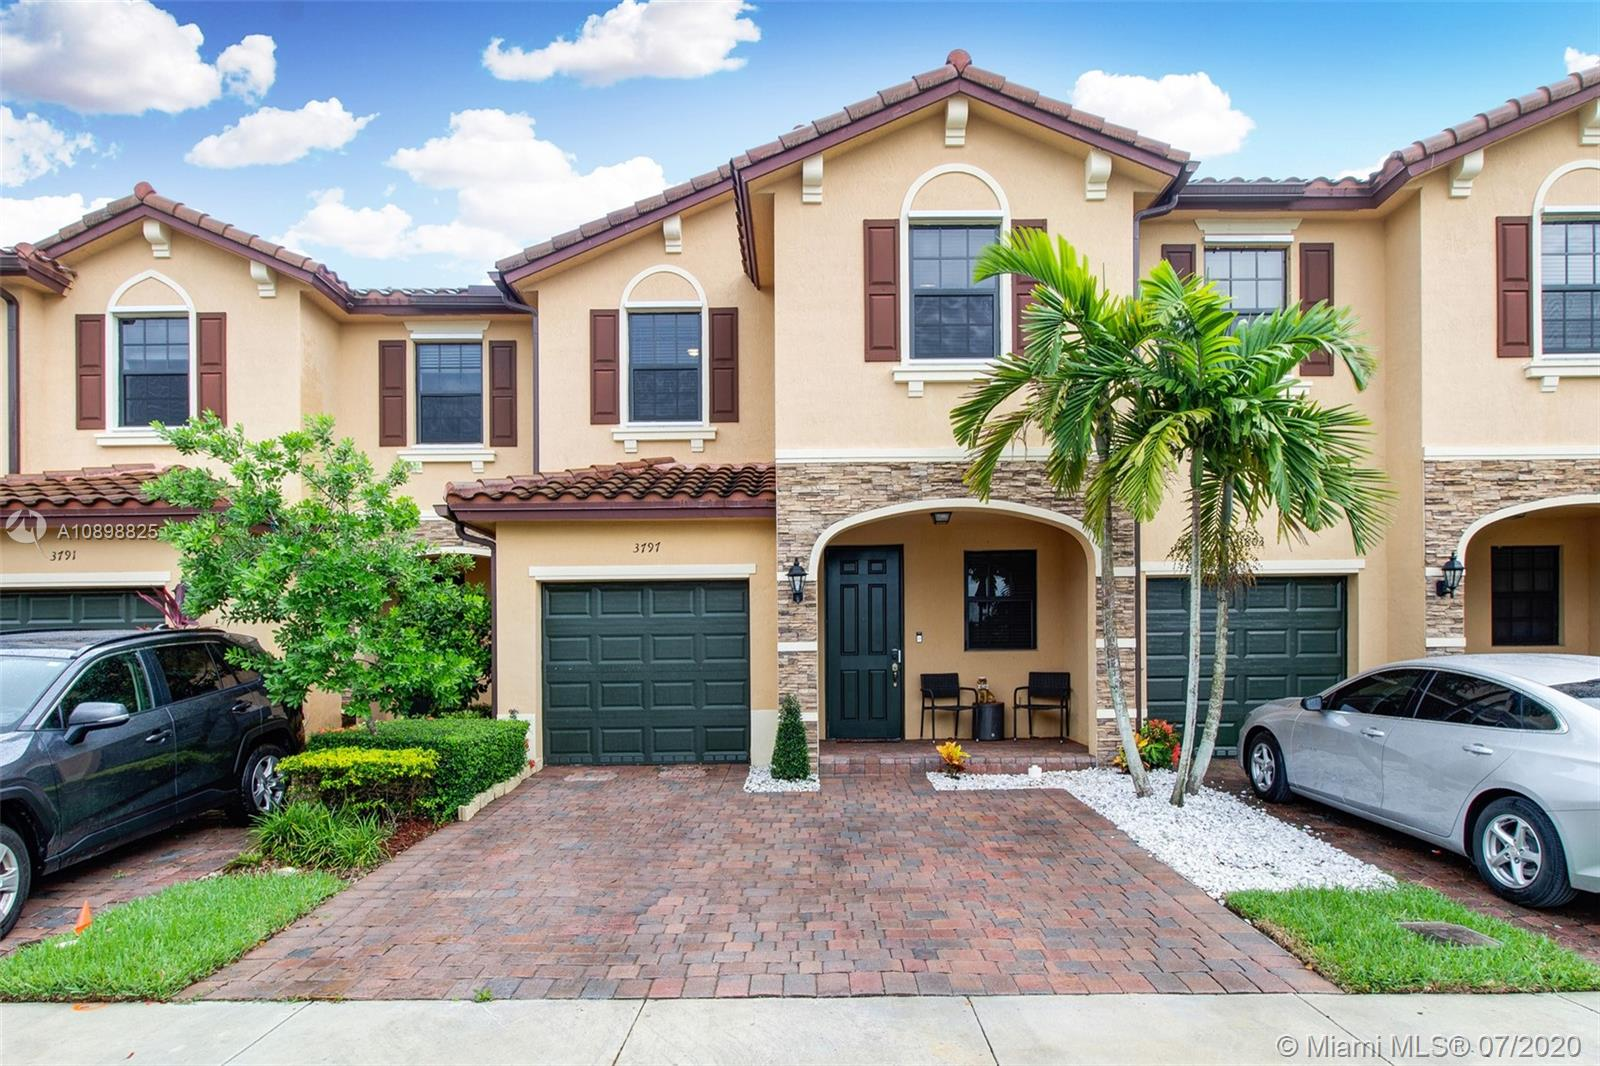 3797 SE 3rd Ct Property Photo - Homestead, FL real estate listing